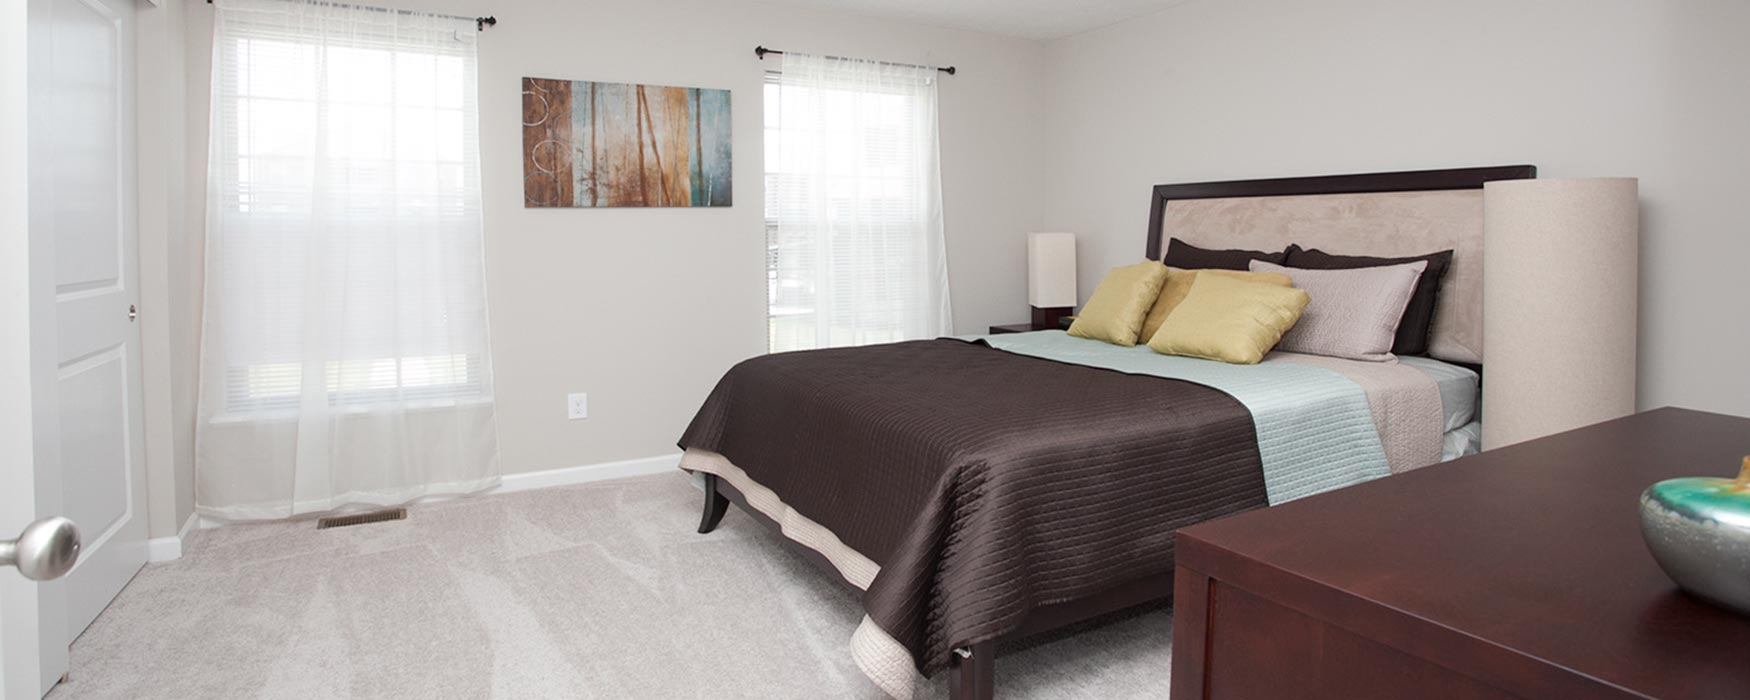 LC The Mill | Georgetown Apartments | Bentley II Bedroom